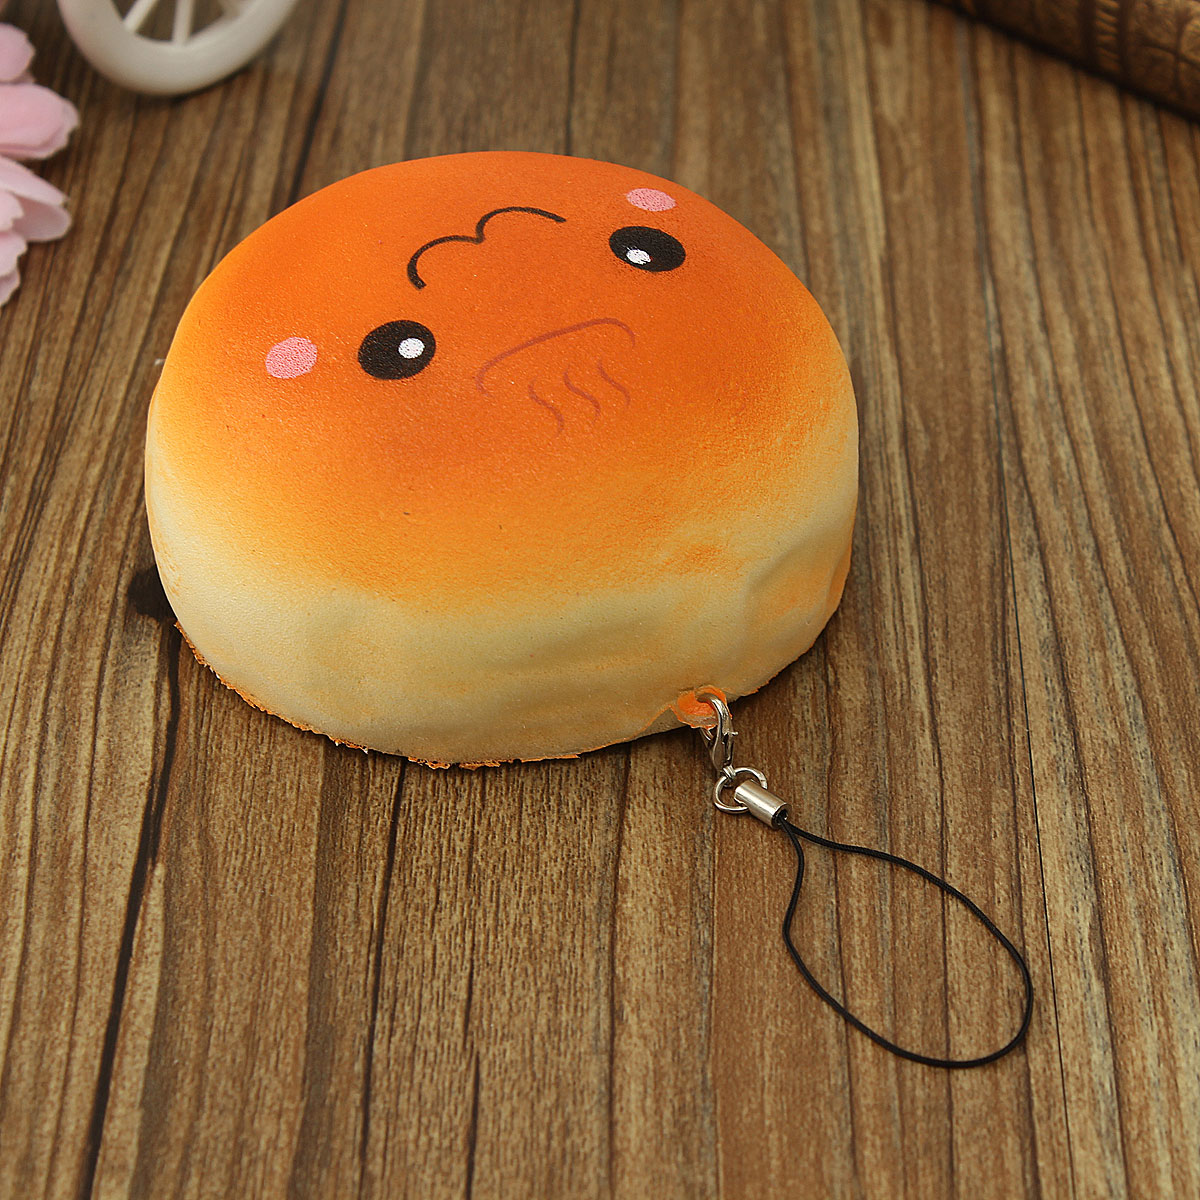 10CM Cute Smiling Expression Kawaii Squishy Bread Keychain Bag Phone Charm Strap